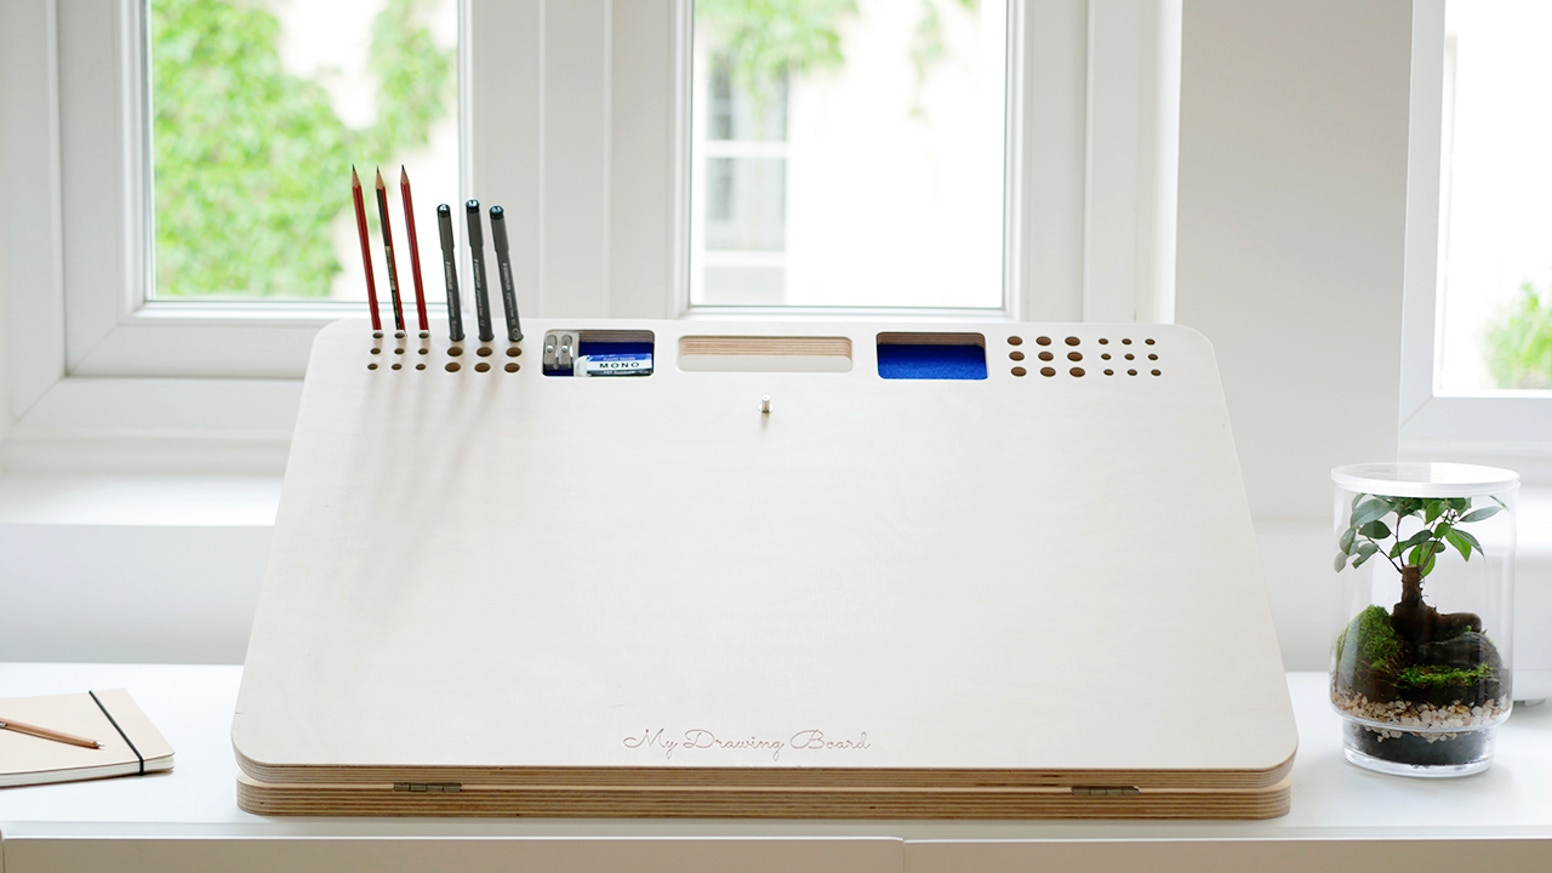 The perfect companion for any creative. Designed to draw in the best conditions and keep your work space organized.